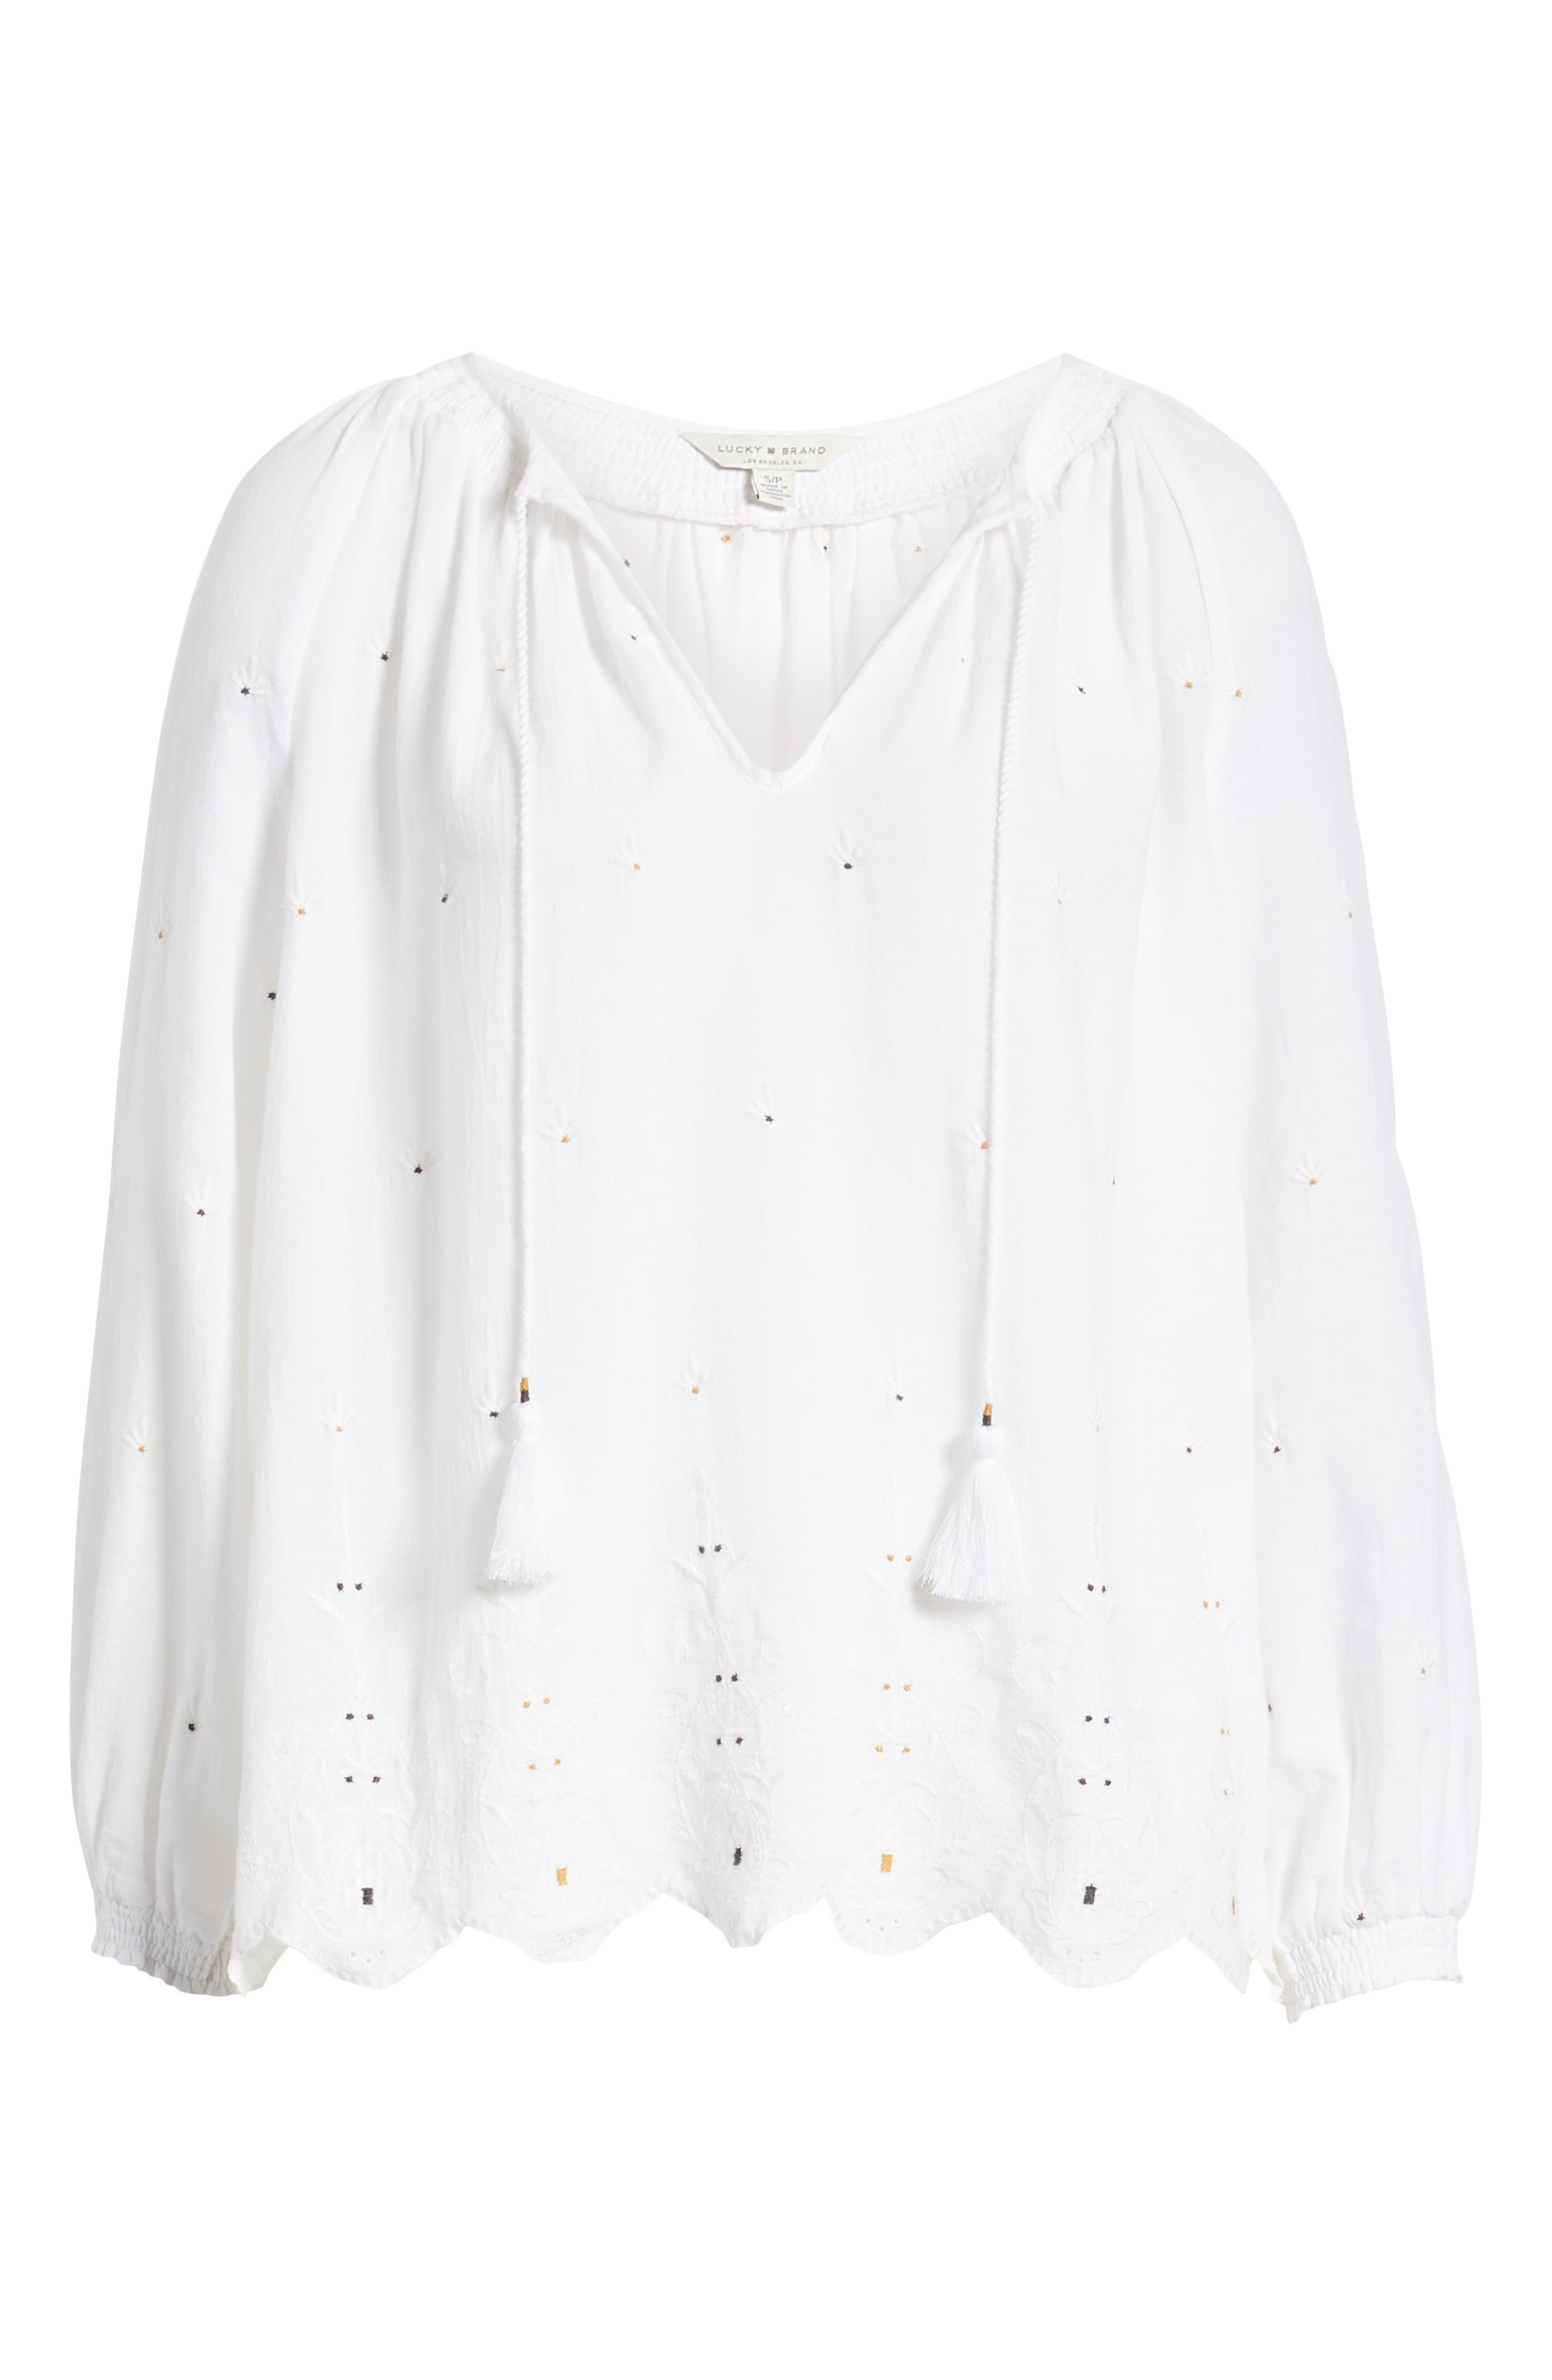 LUCKY BRAND, Eyelet Peasant Top, Alternate thumbnail 6, color, LUCKY WHITE